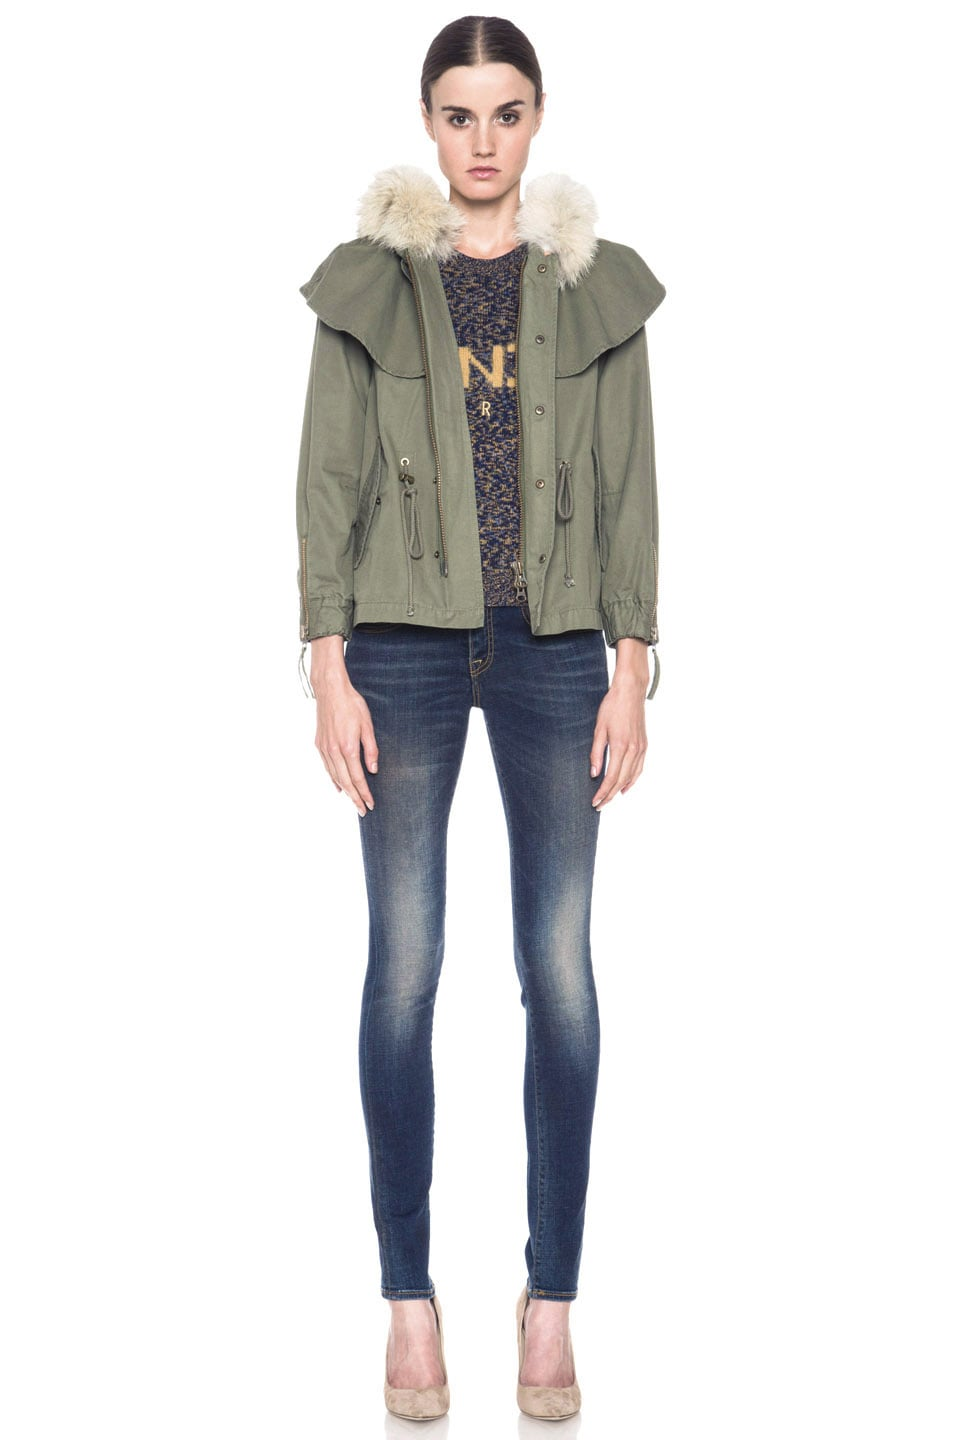 Image 6 of Skaist Taylor Cropped Cape Cotton Jacket with Fur in Army Green